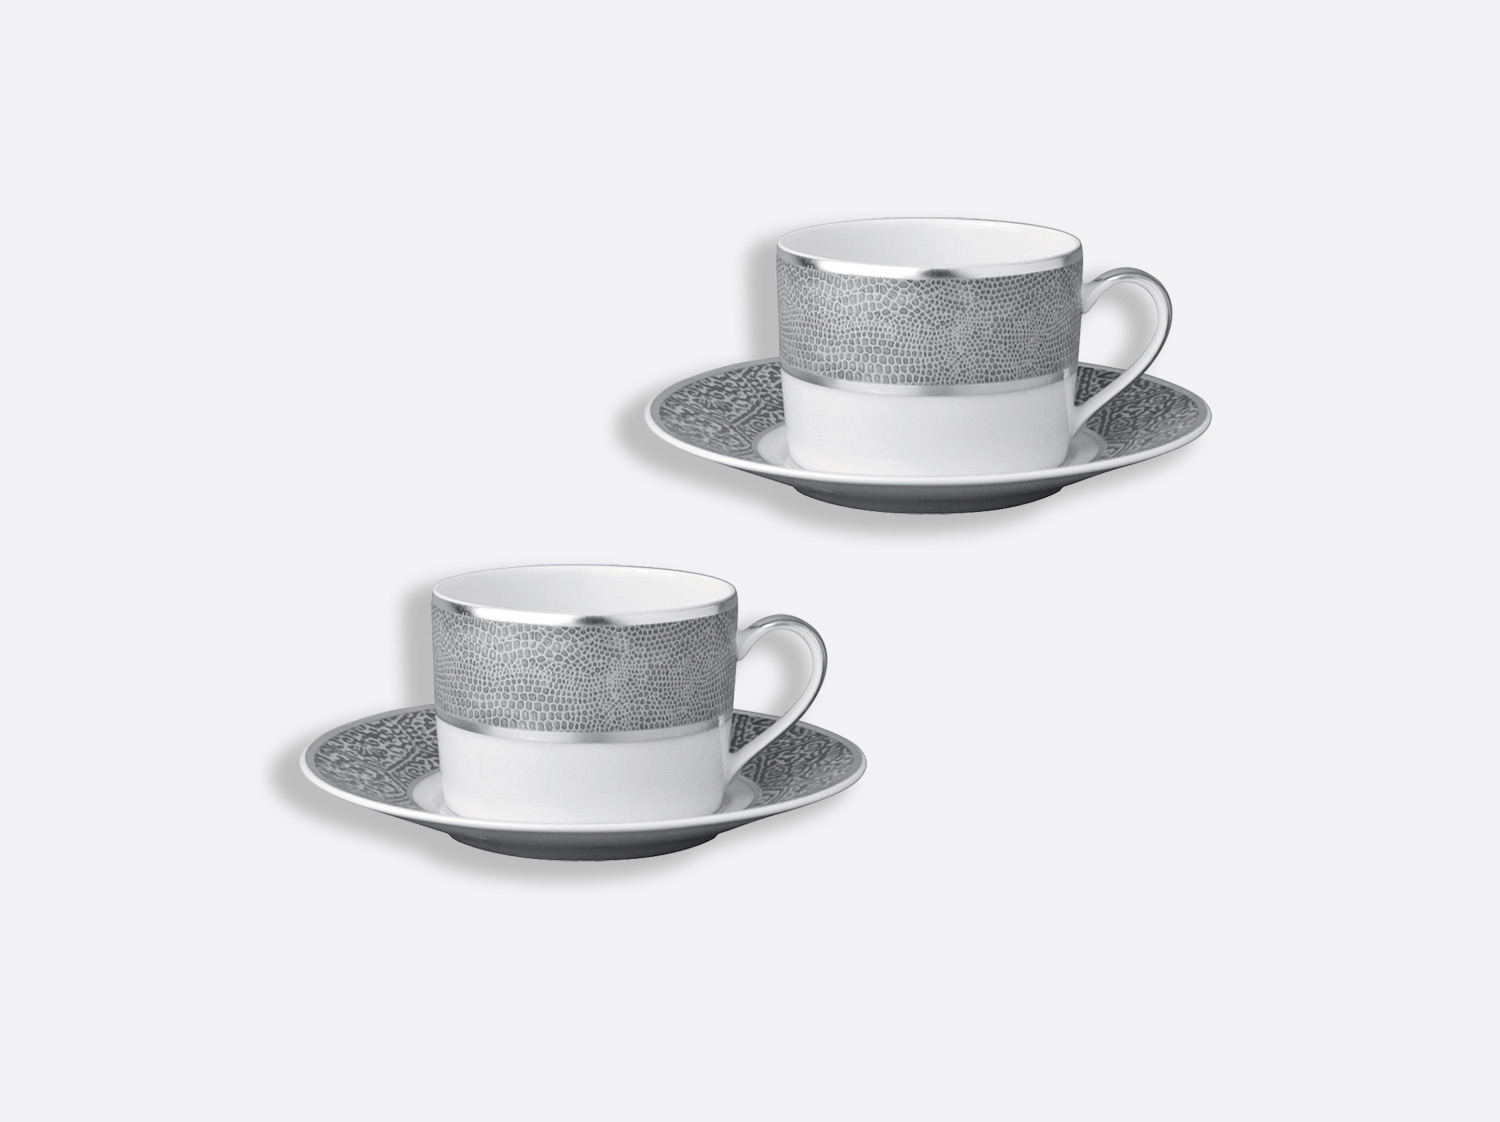 China Tea cup and saucer gift box - 20 cl - Set of 2 of the collection Sauvage | Bernardaud